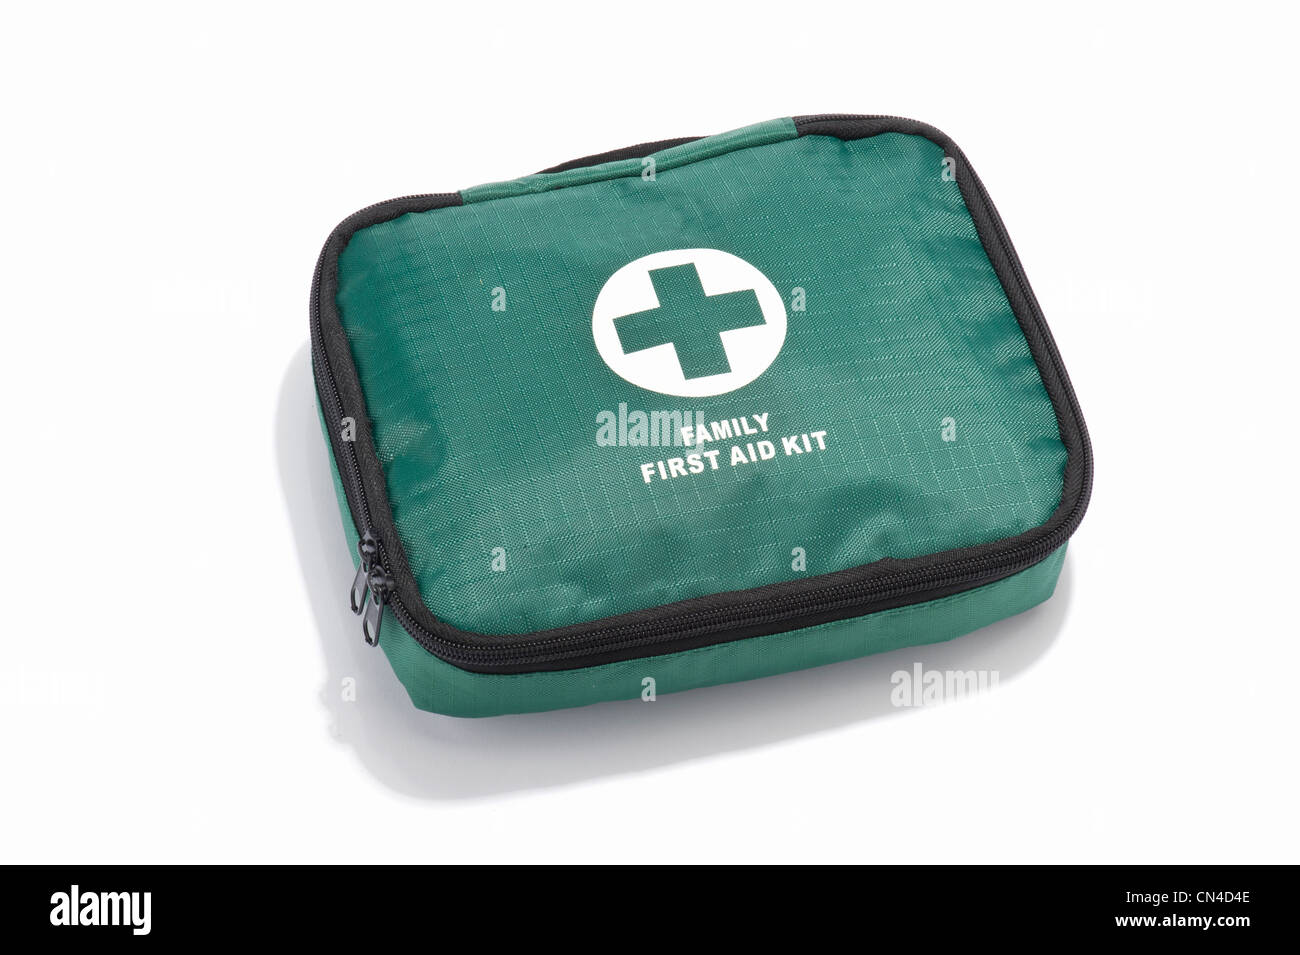 A family first aid kit - Stock Image